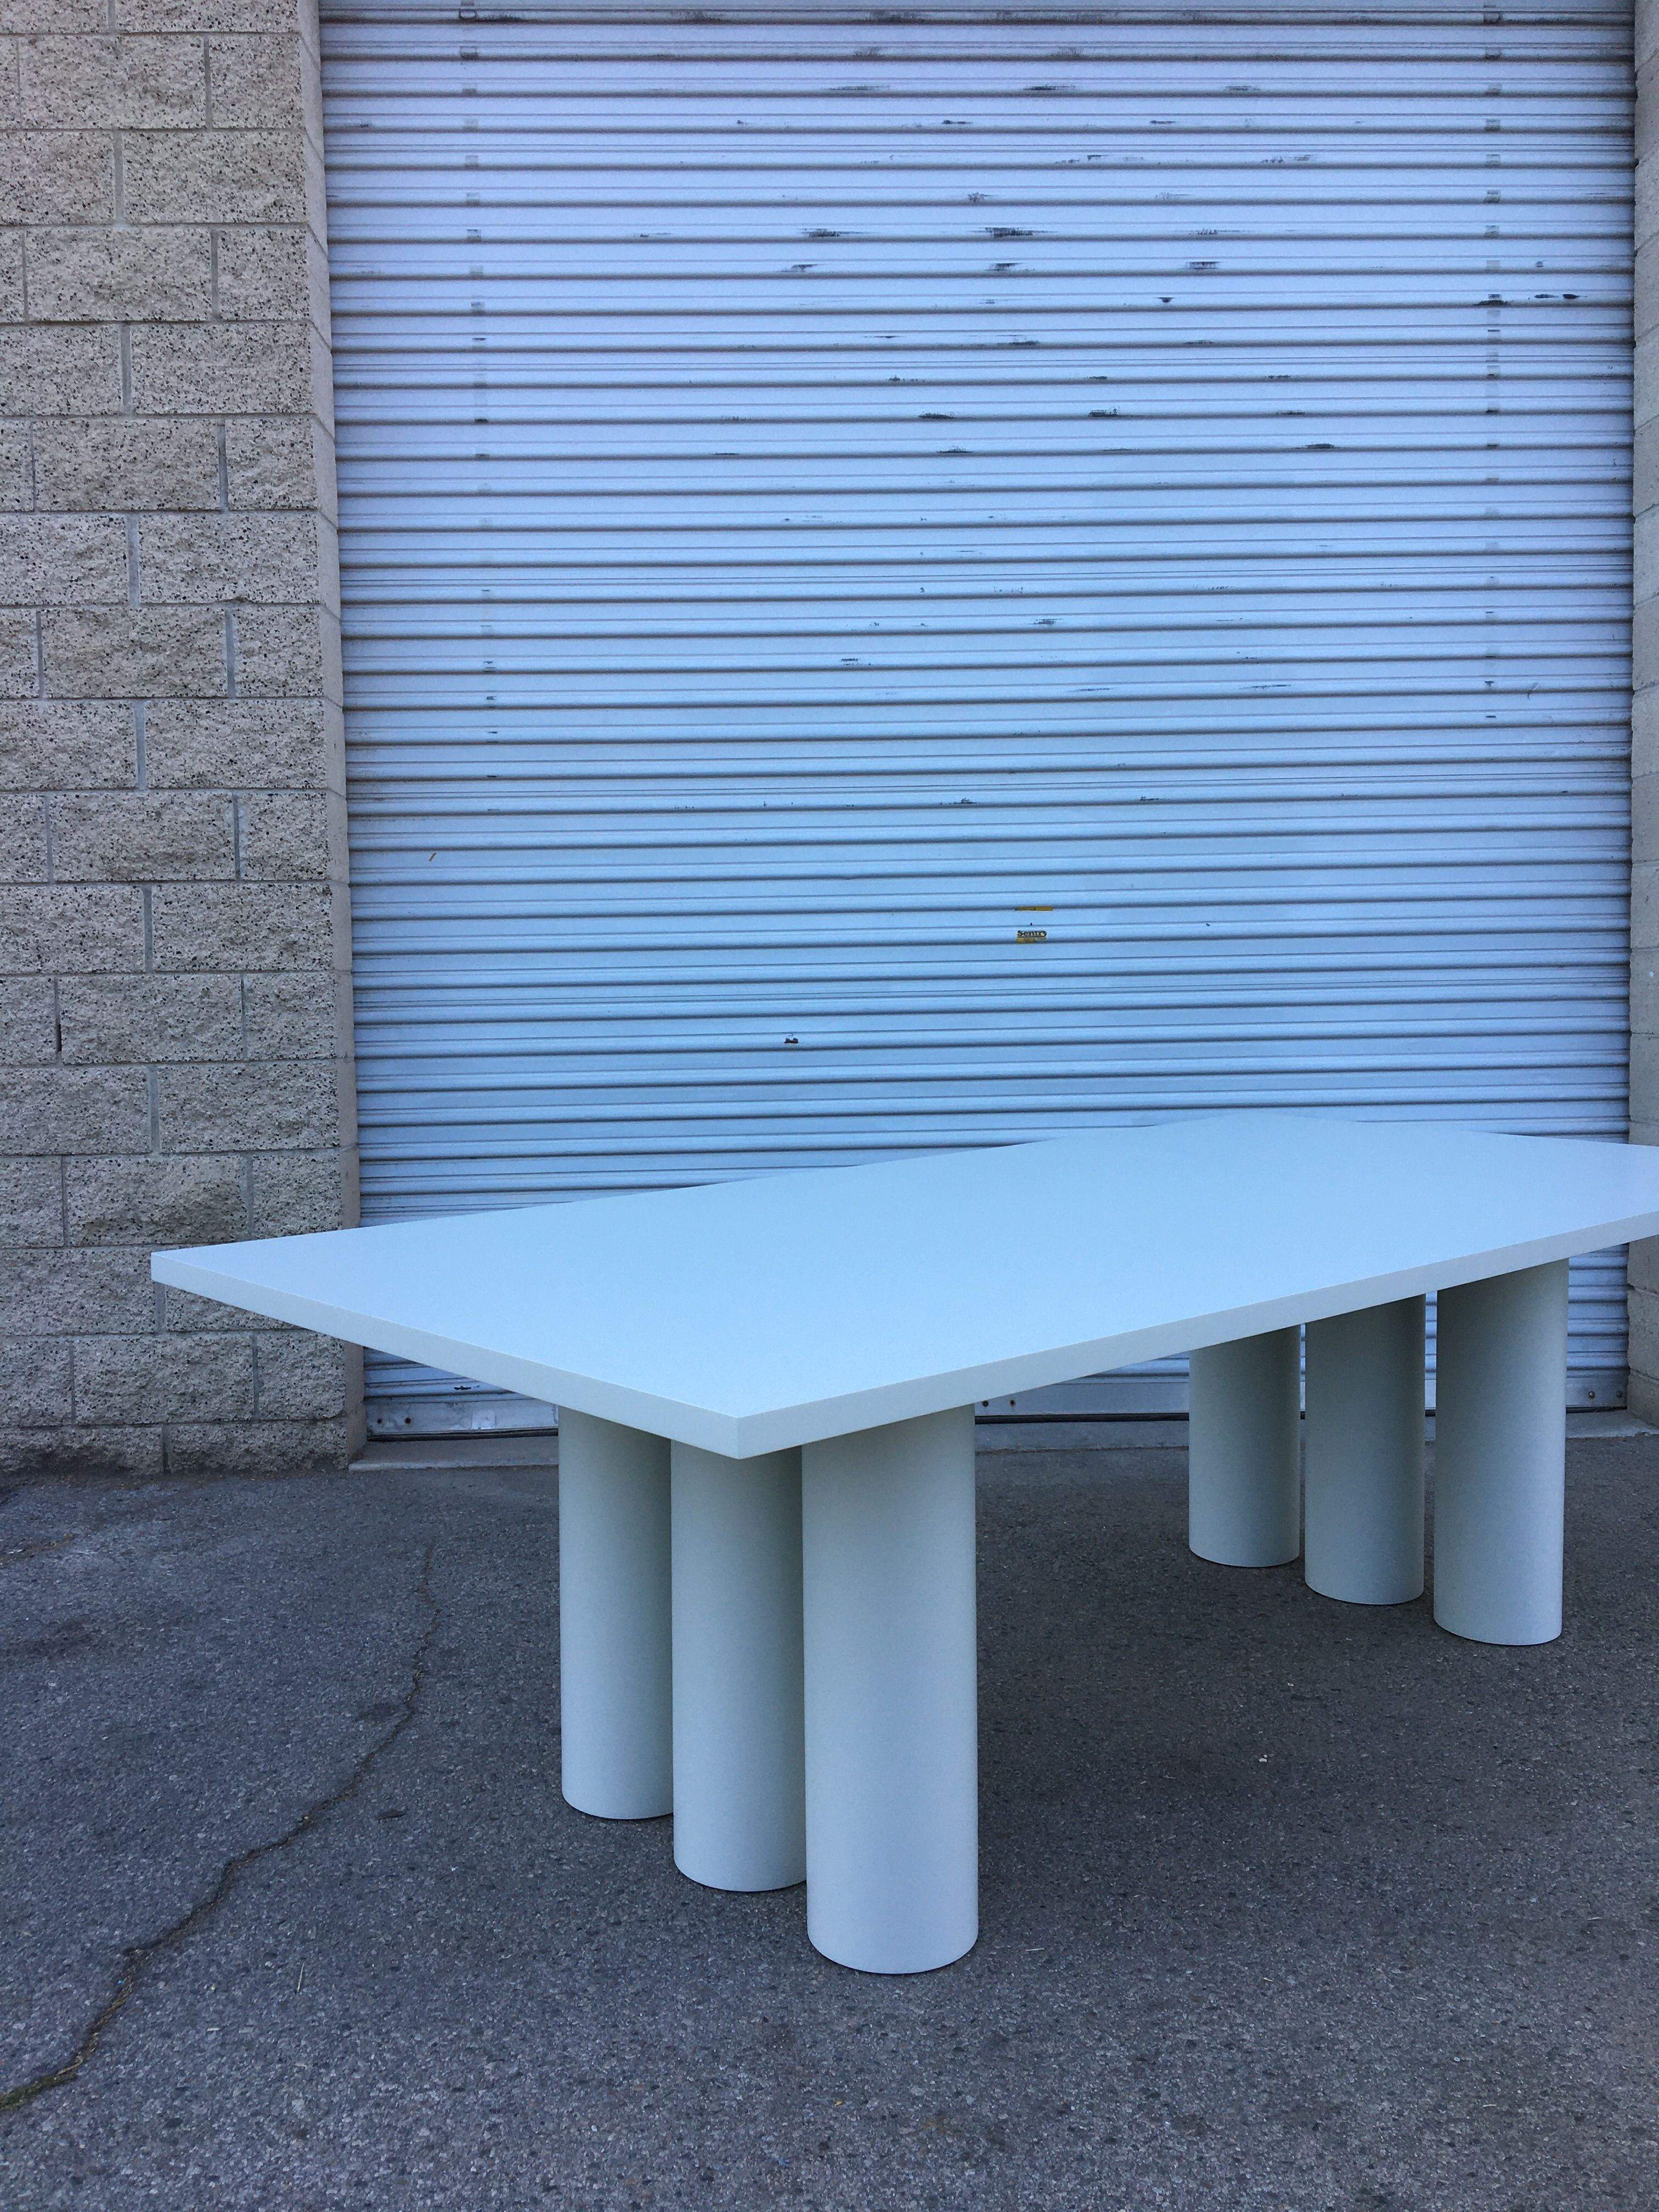 Six Cylinder Table product image 3